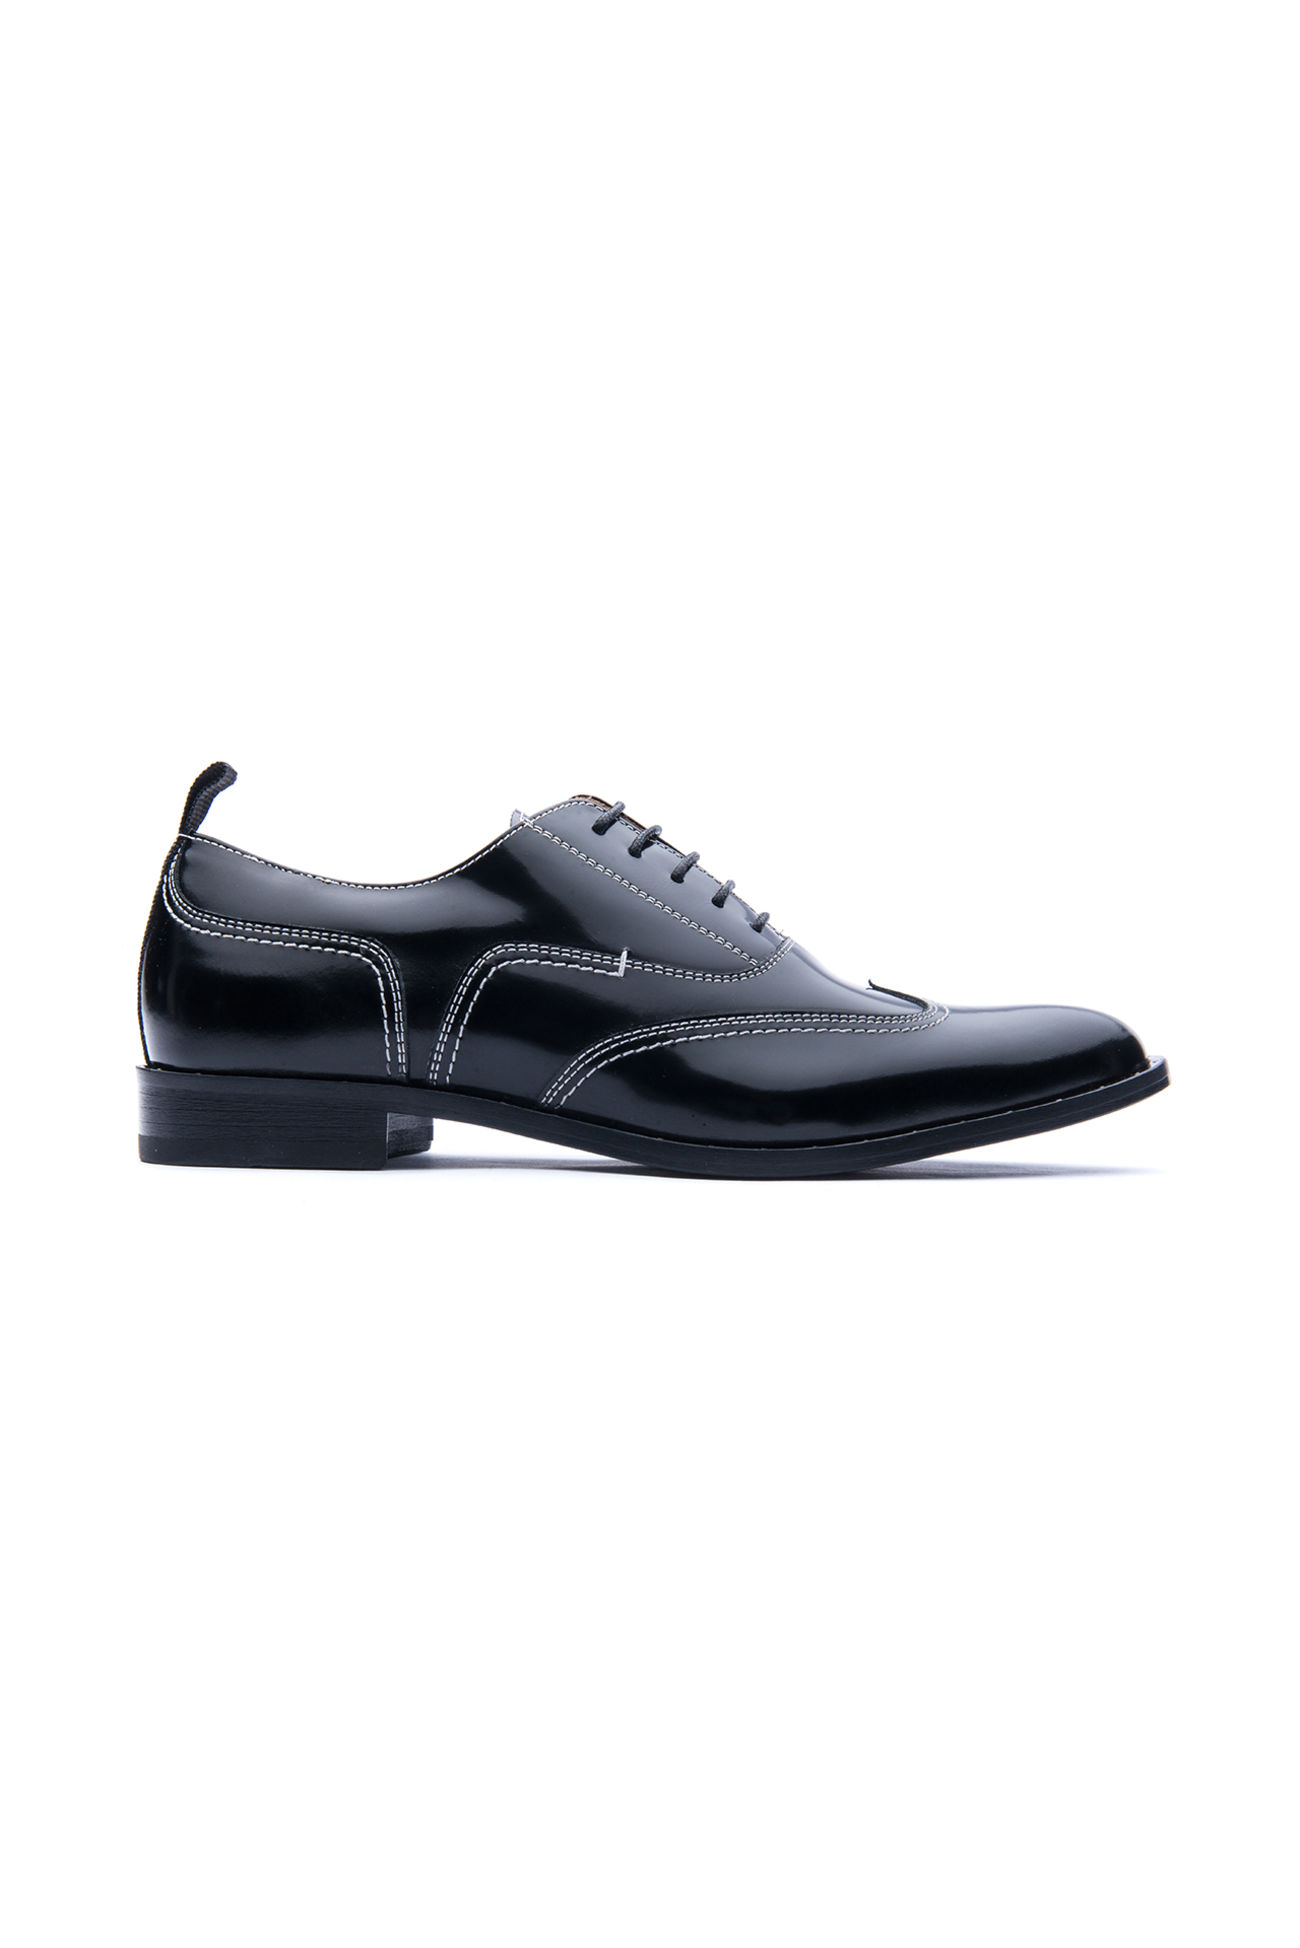 Brogues shoe in leather